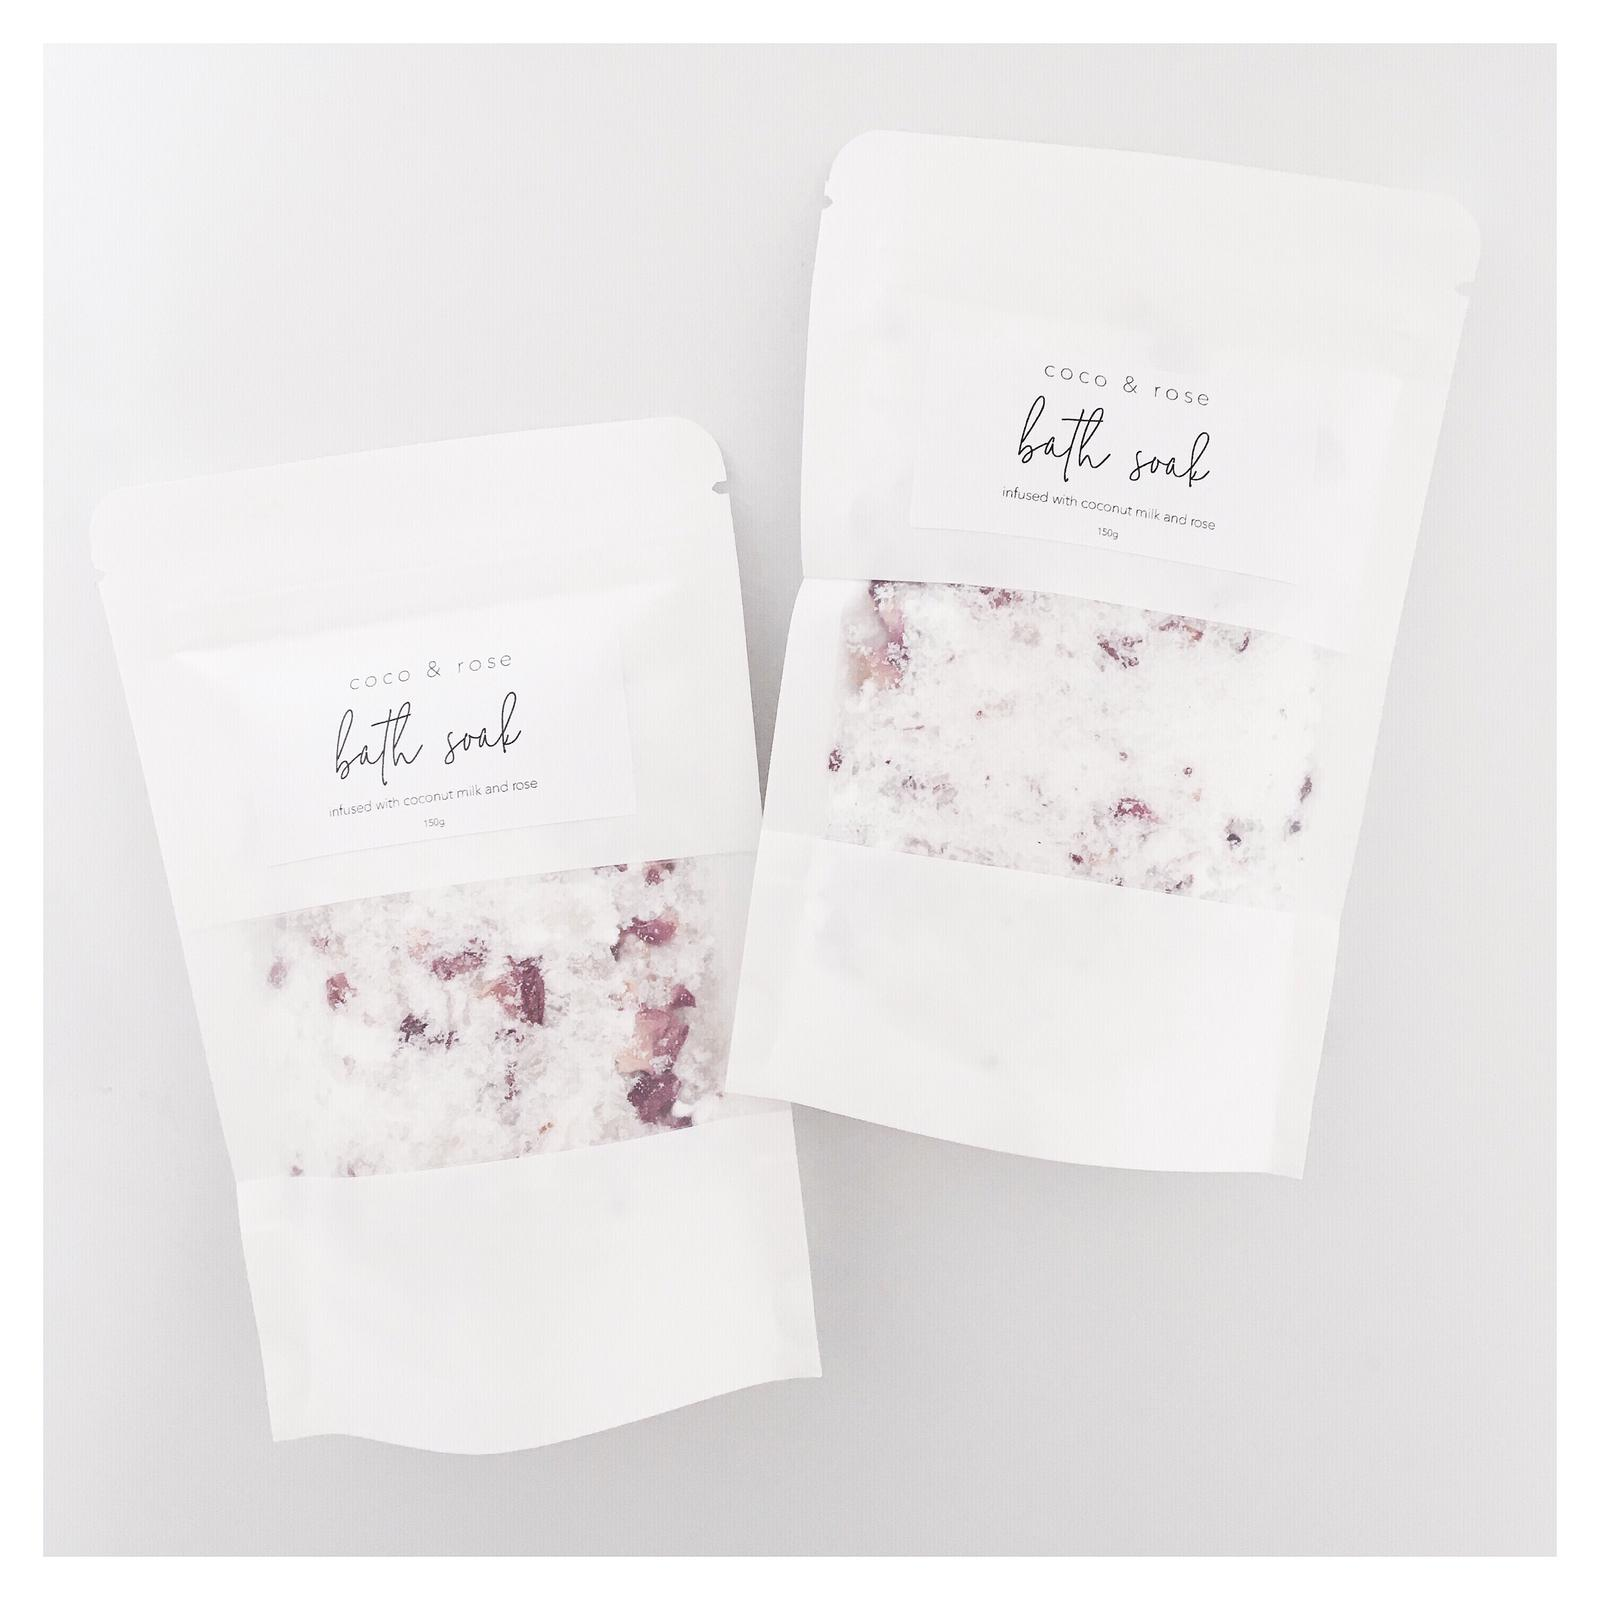 Coconut milk & rose infused bath soak